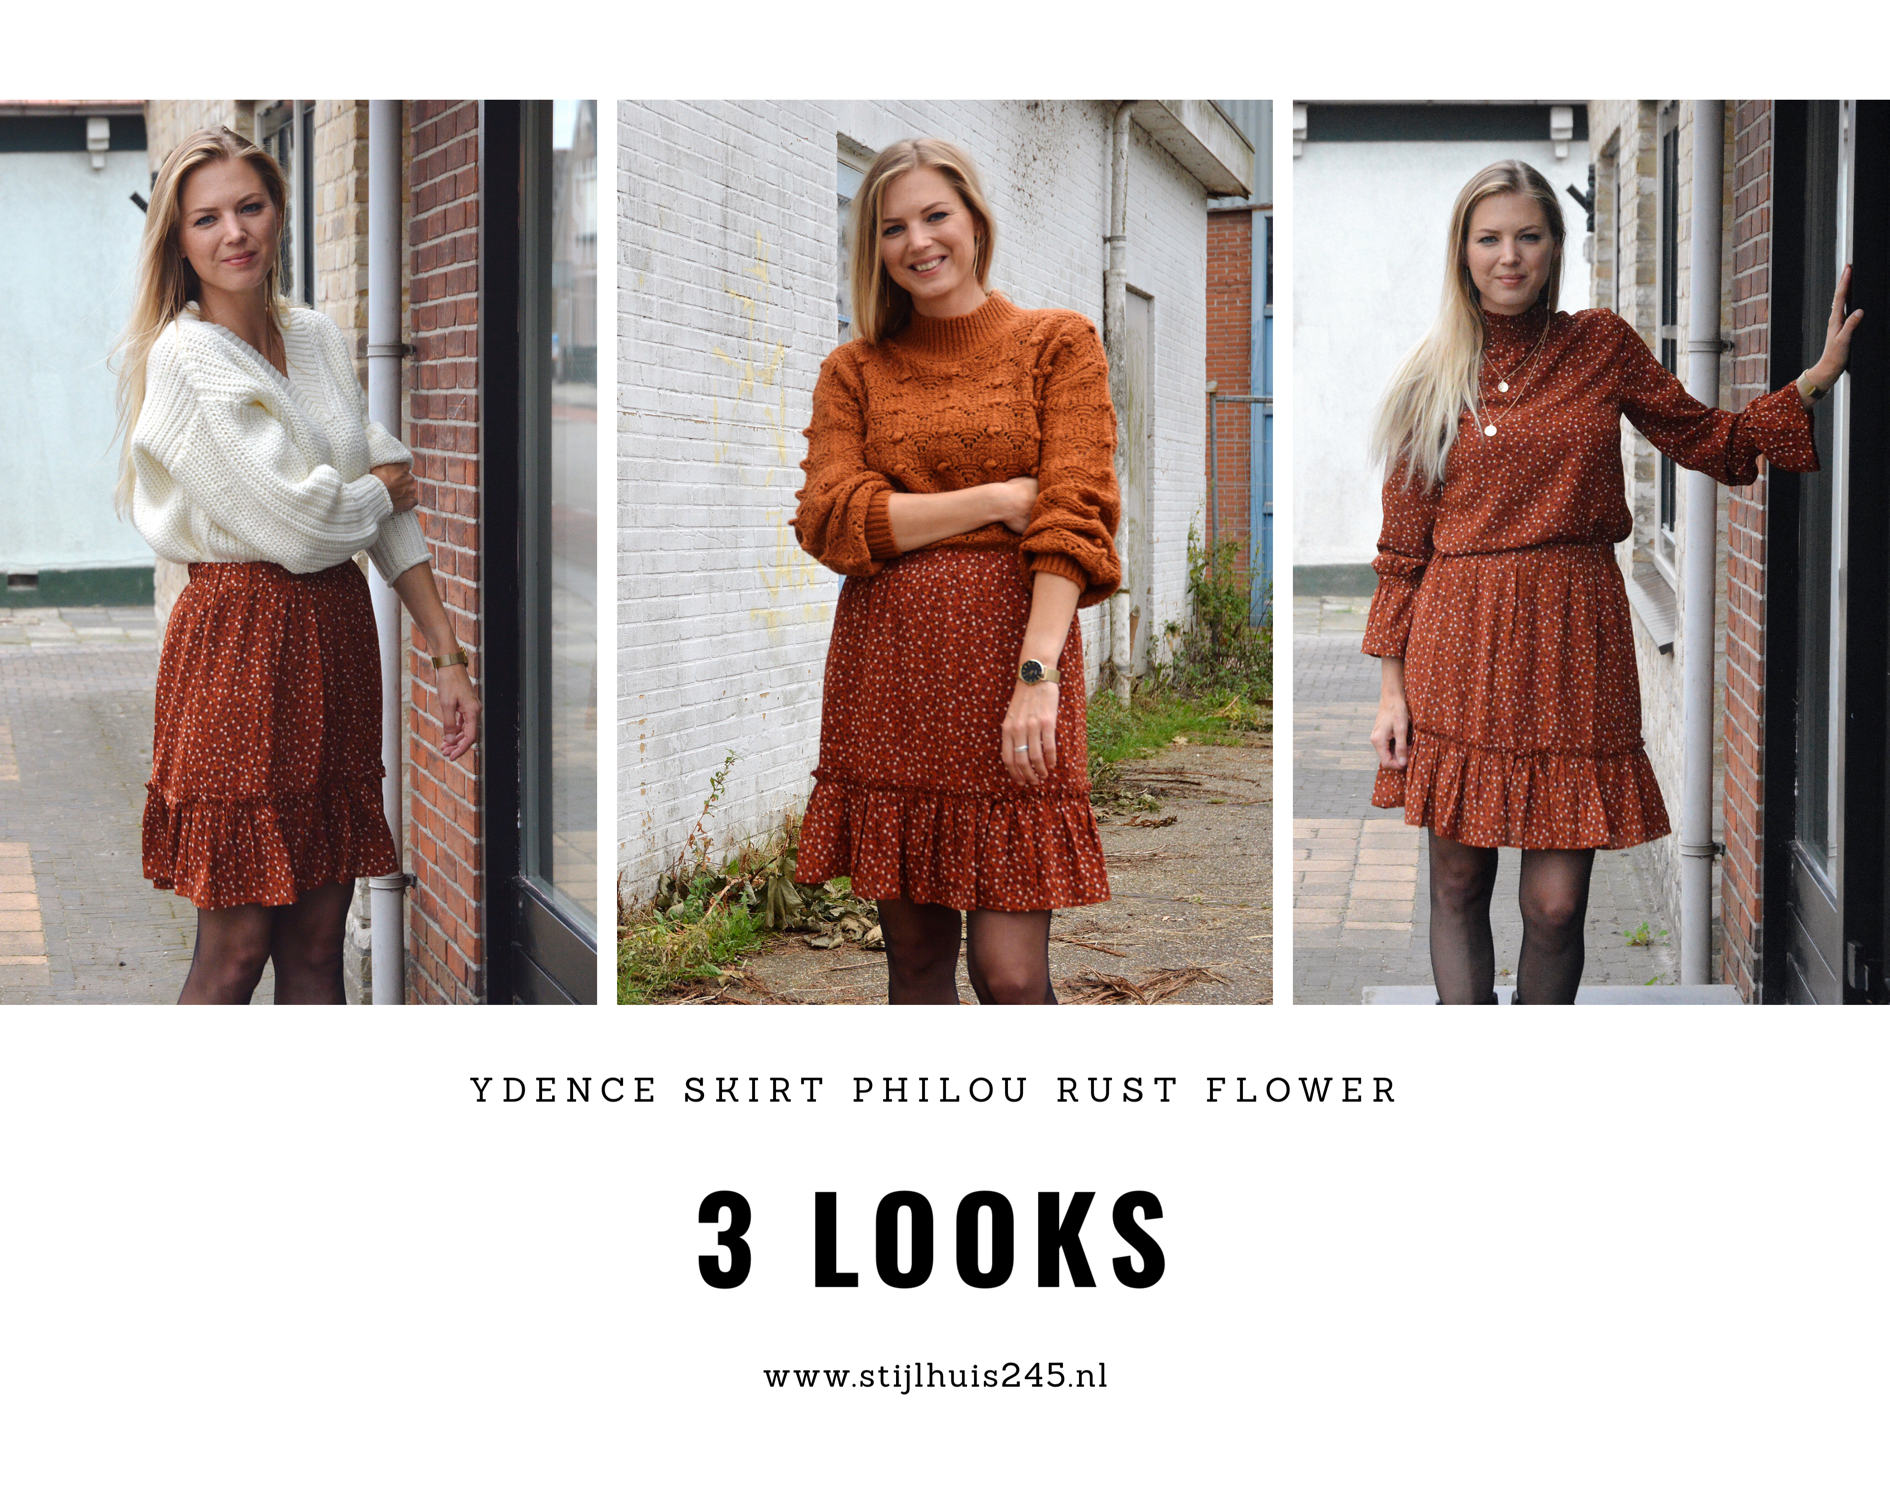 3 outfits met de ydence skirt philou rust gecombineerd met de knit mae, top quinn en sweater yana off white